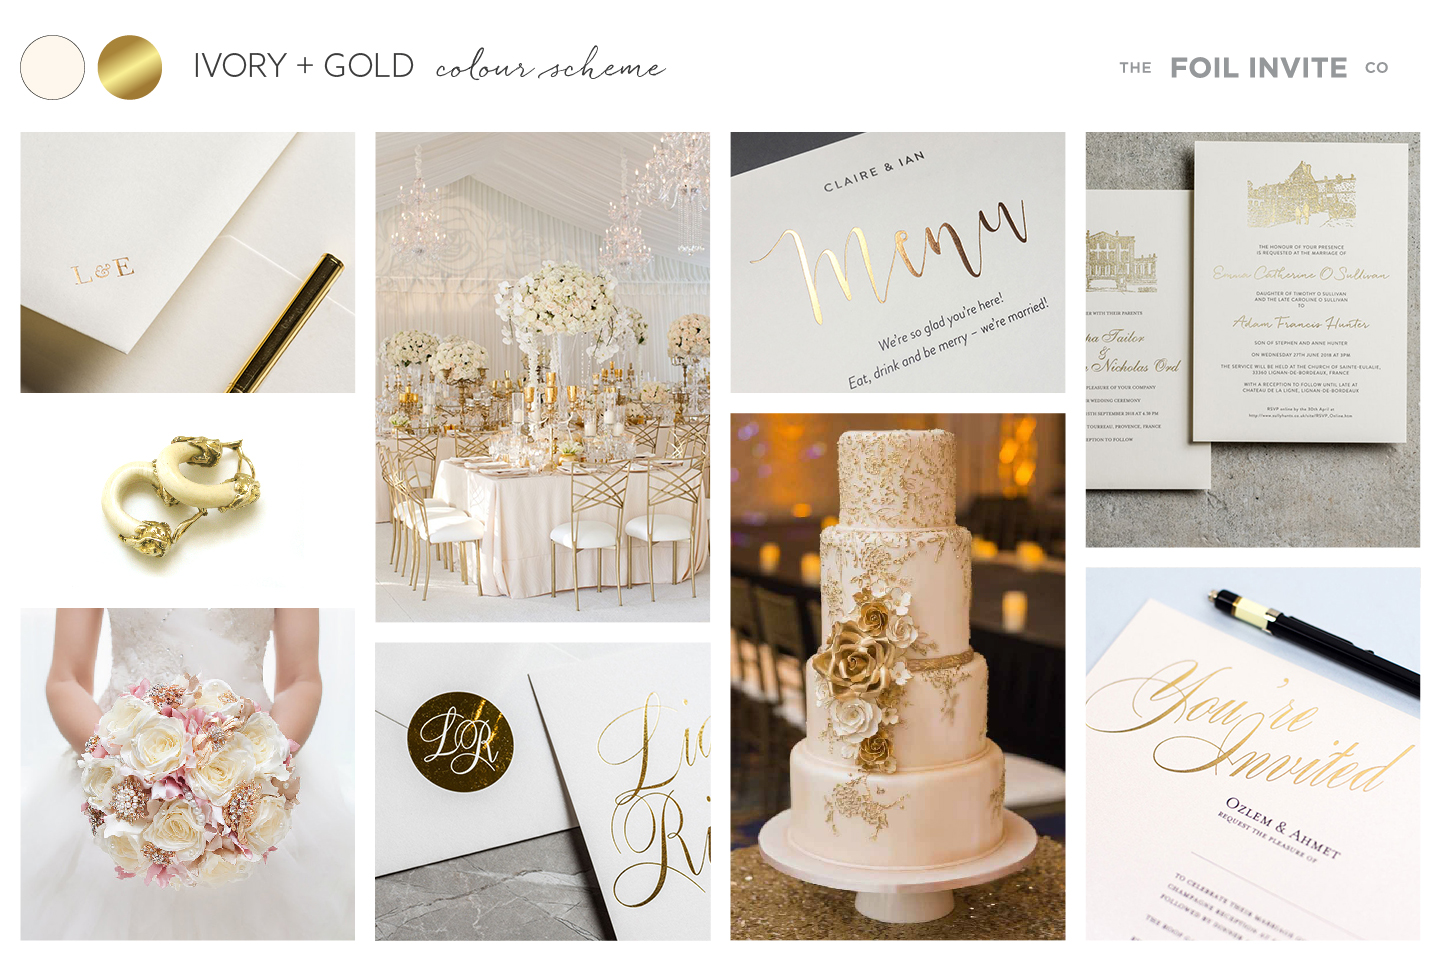 Ivory and Gold Wedding Stationery Blog | Ivory and Gold Wedding Invitations by The Foil Invite Company